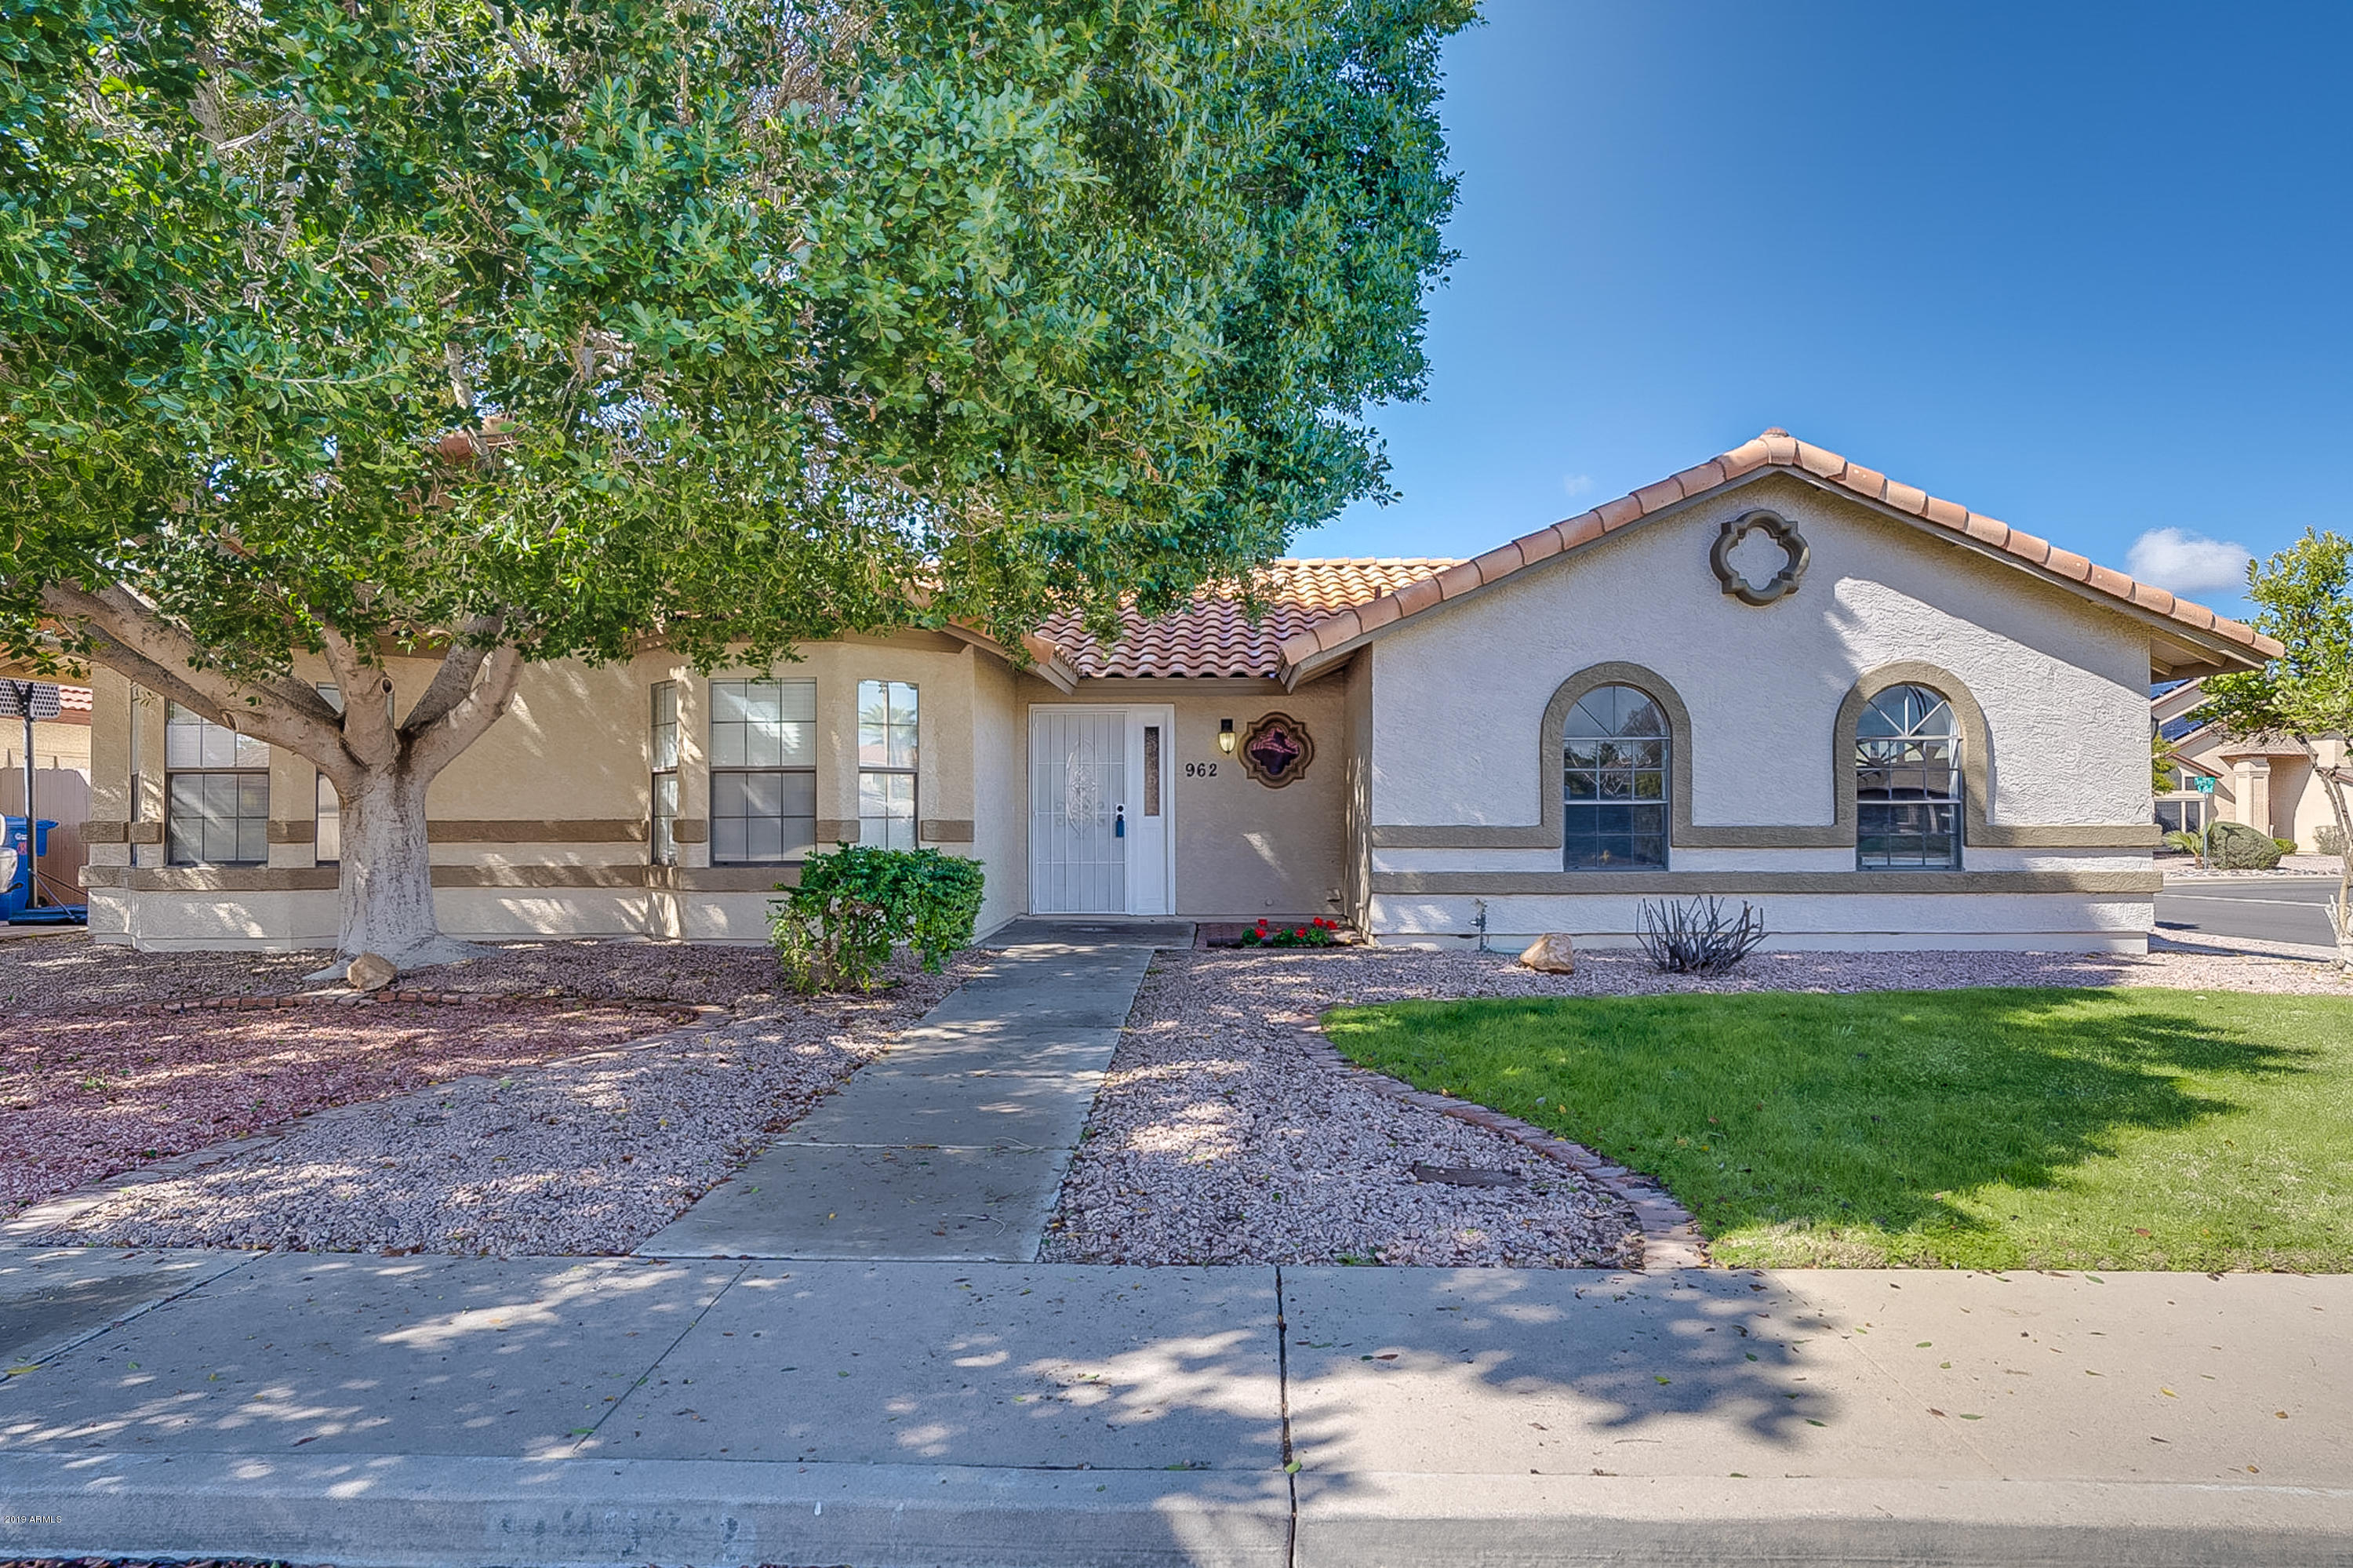 Photo of 962 N 59TH Street, Mesa, AZ 85205